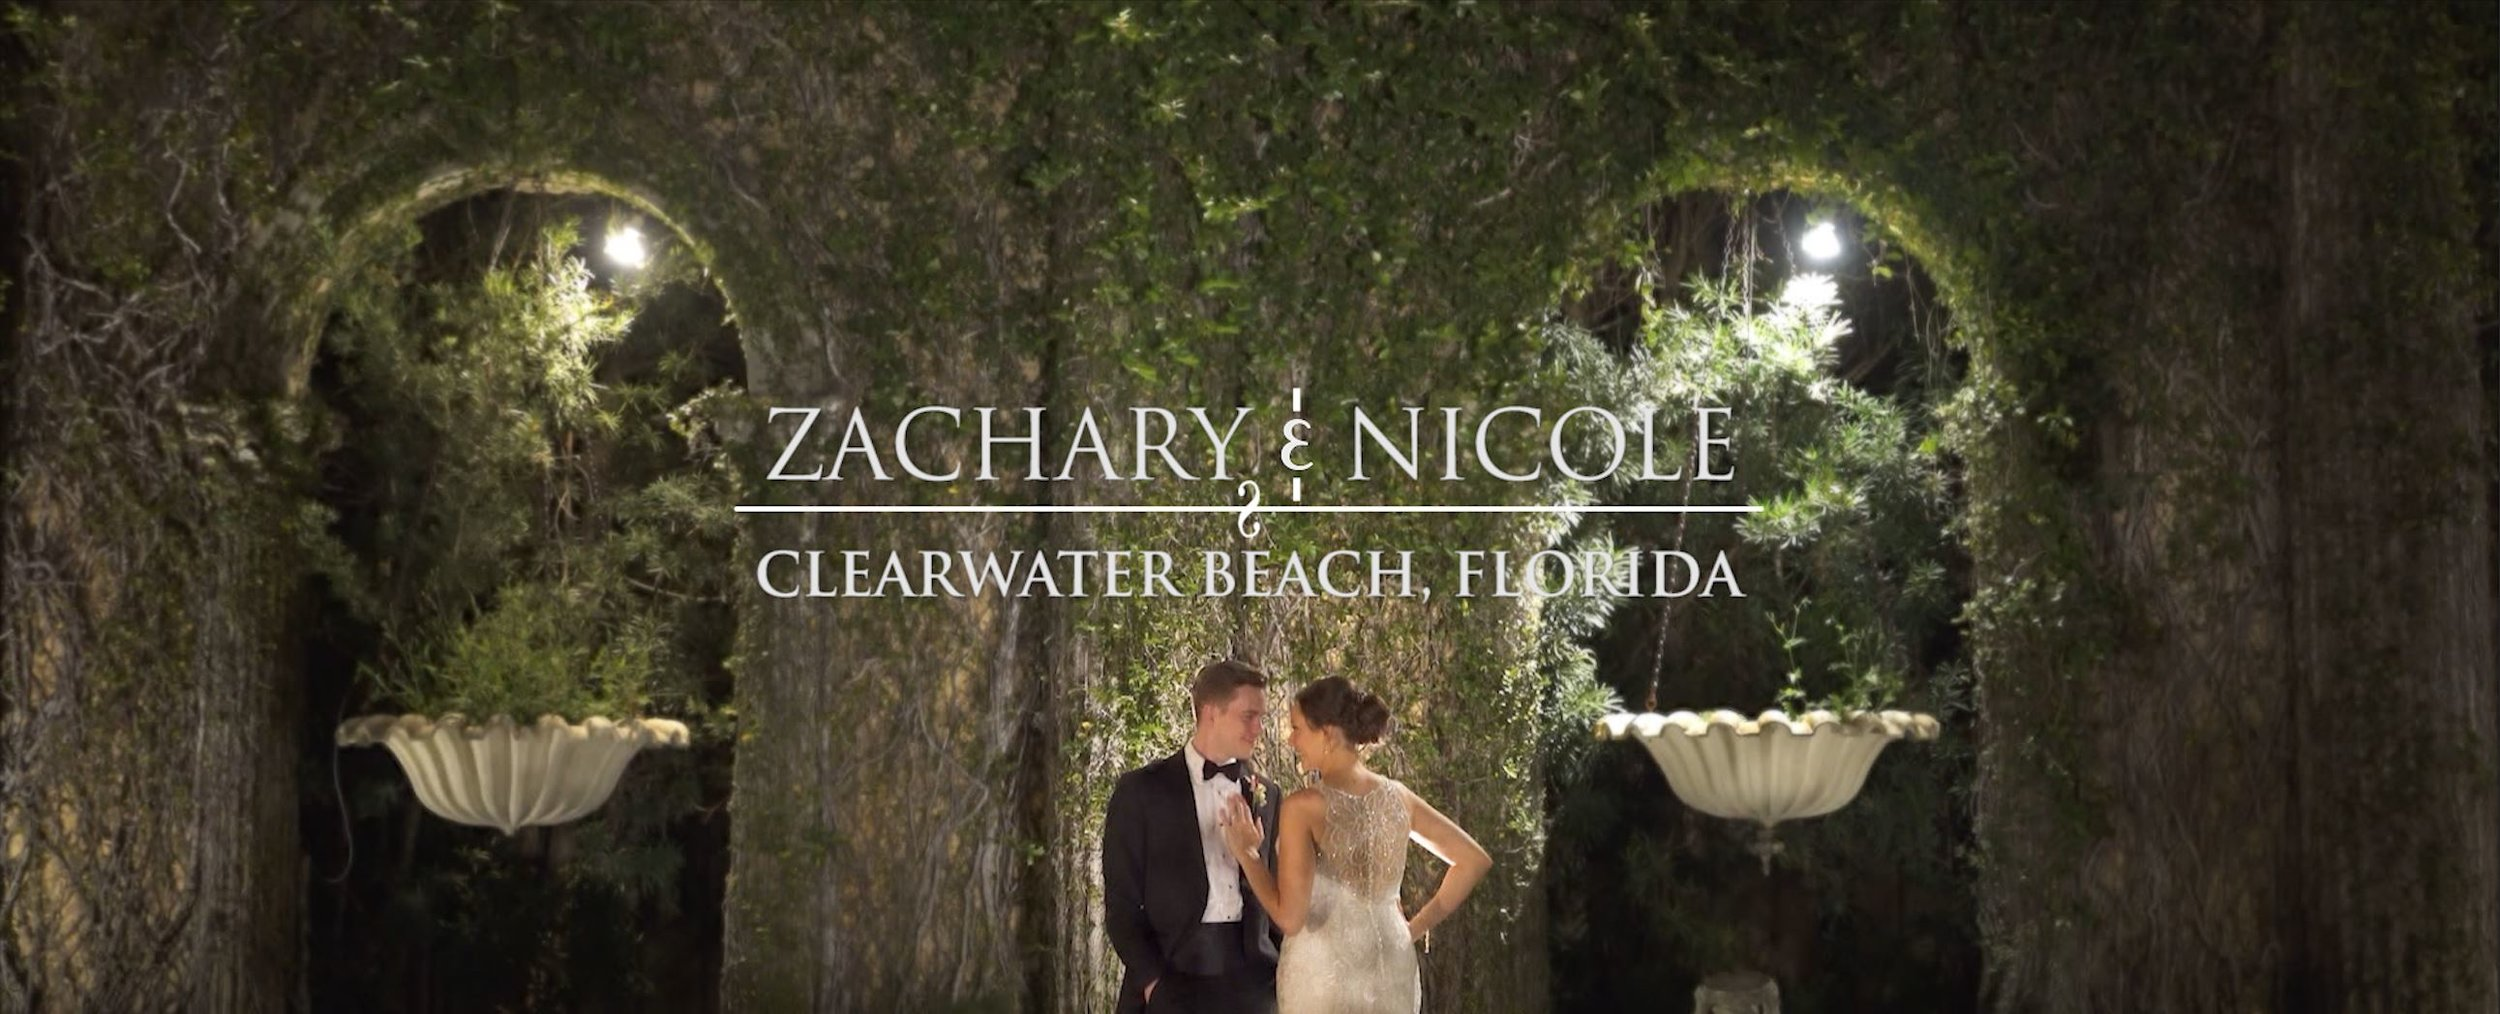 zachary and nicole